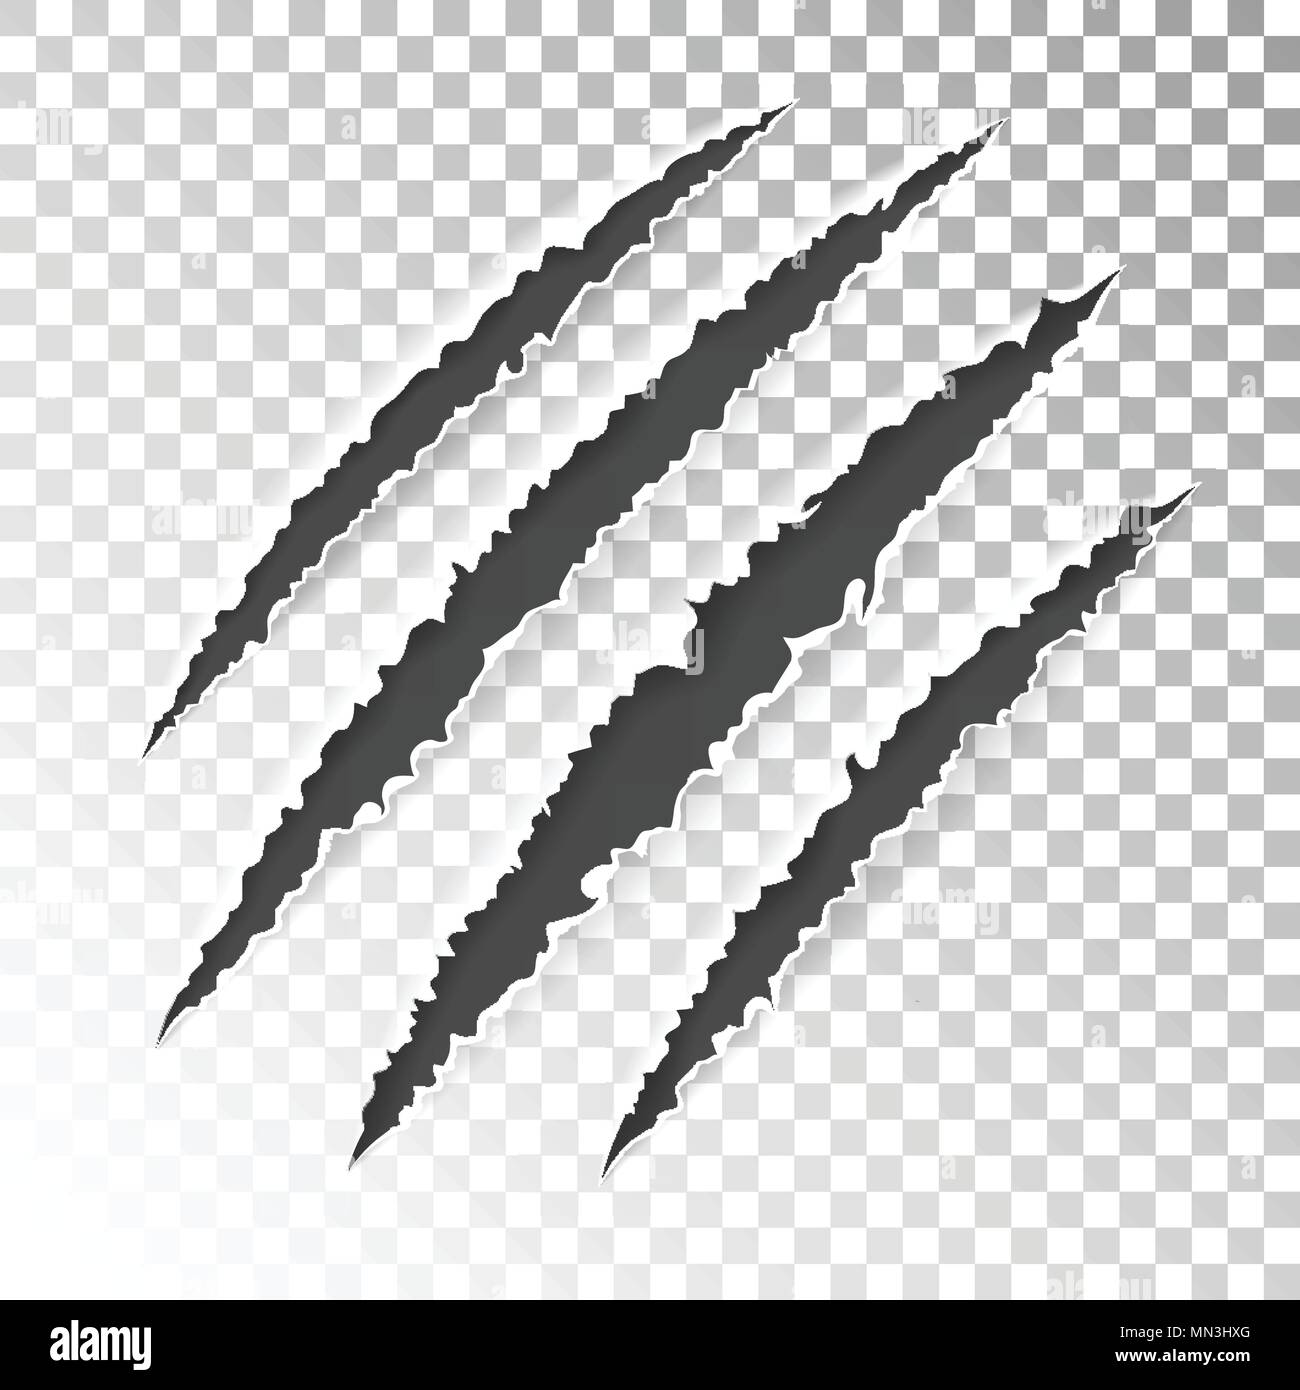 Scratch Claws of Animal - Stock Vector